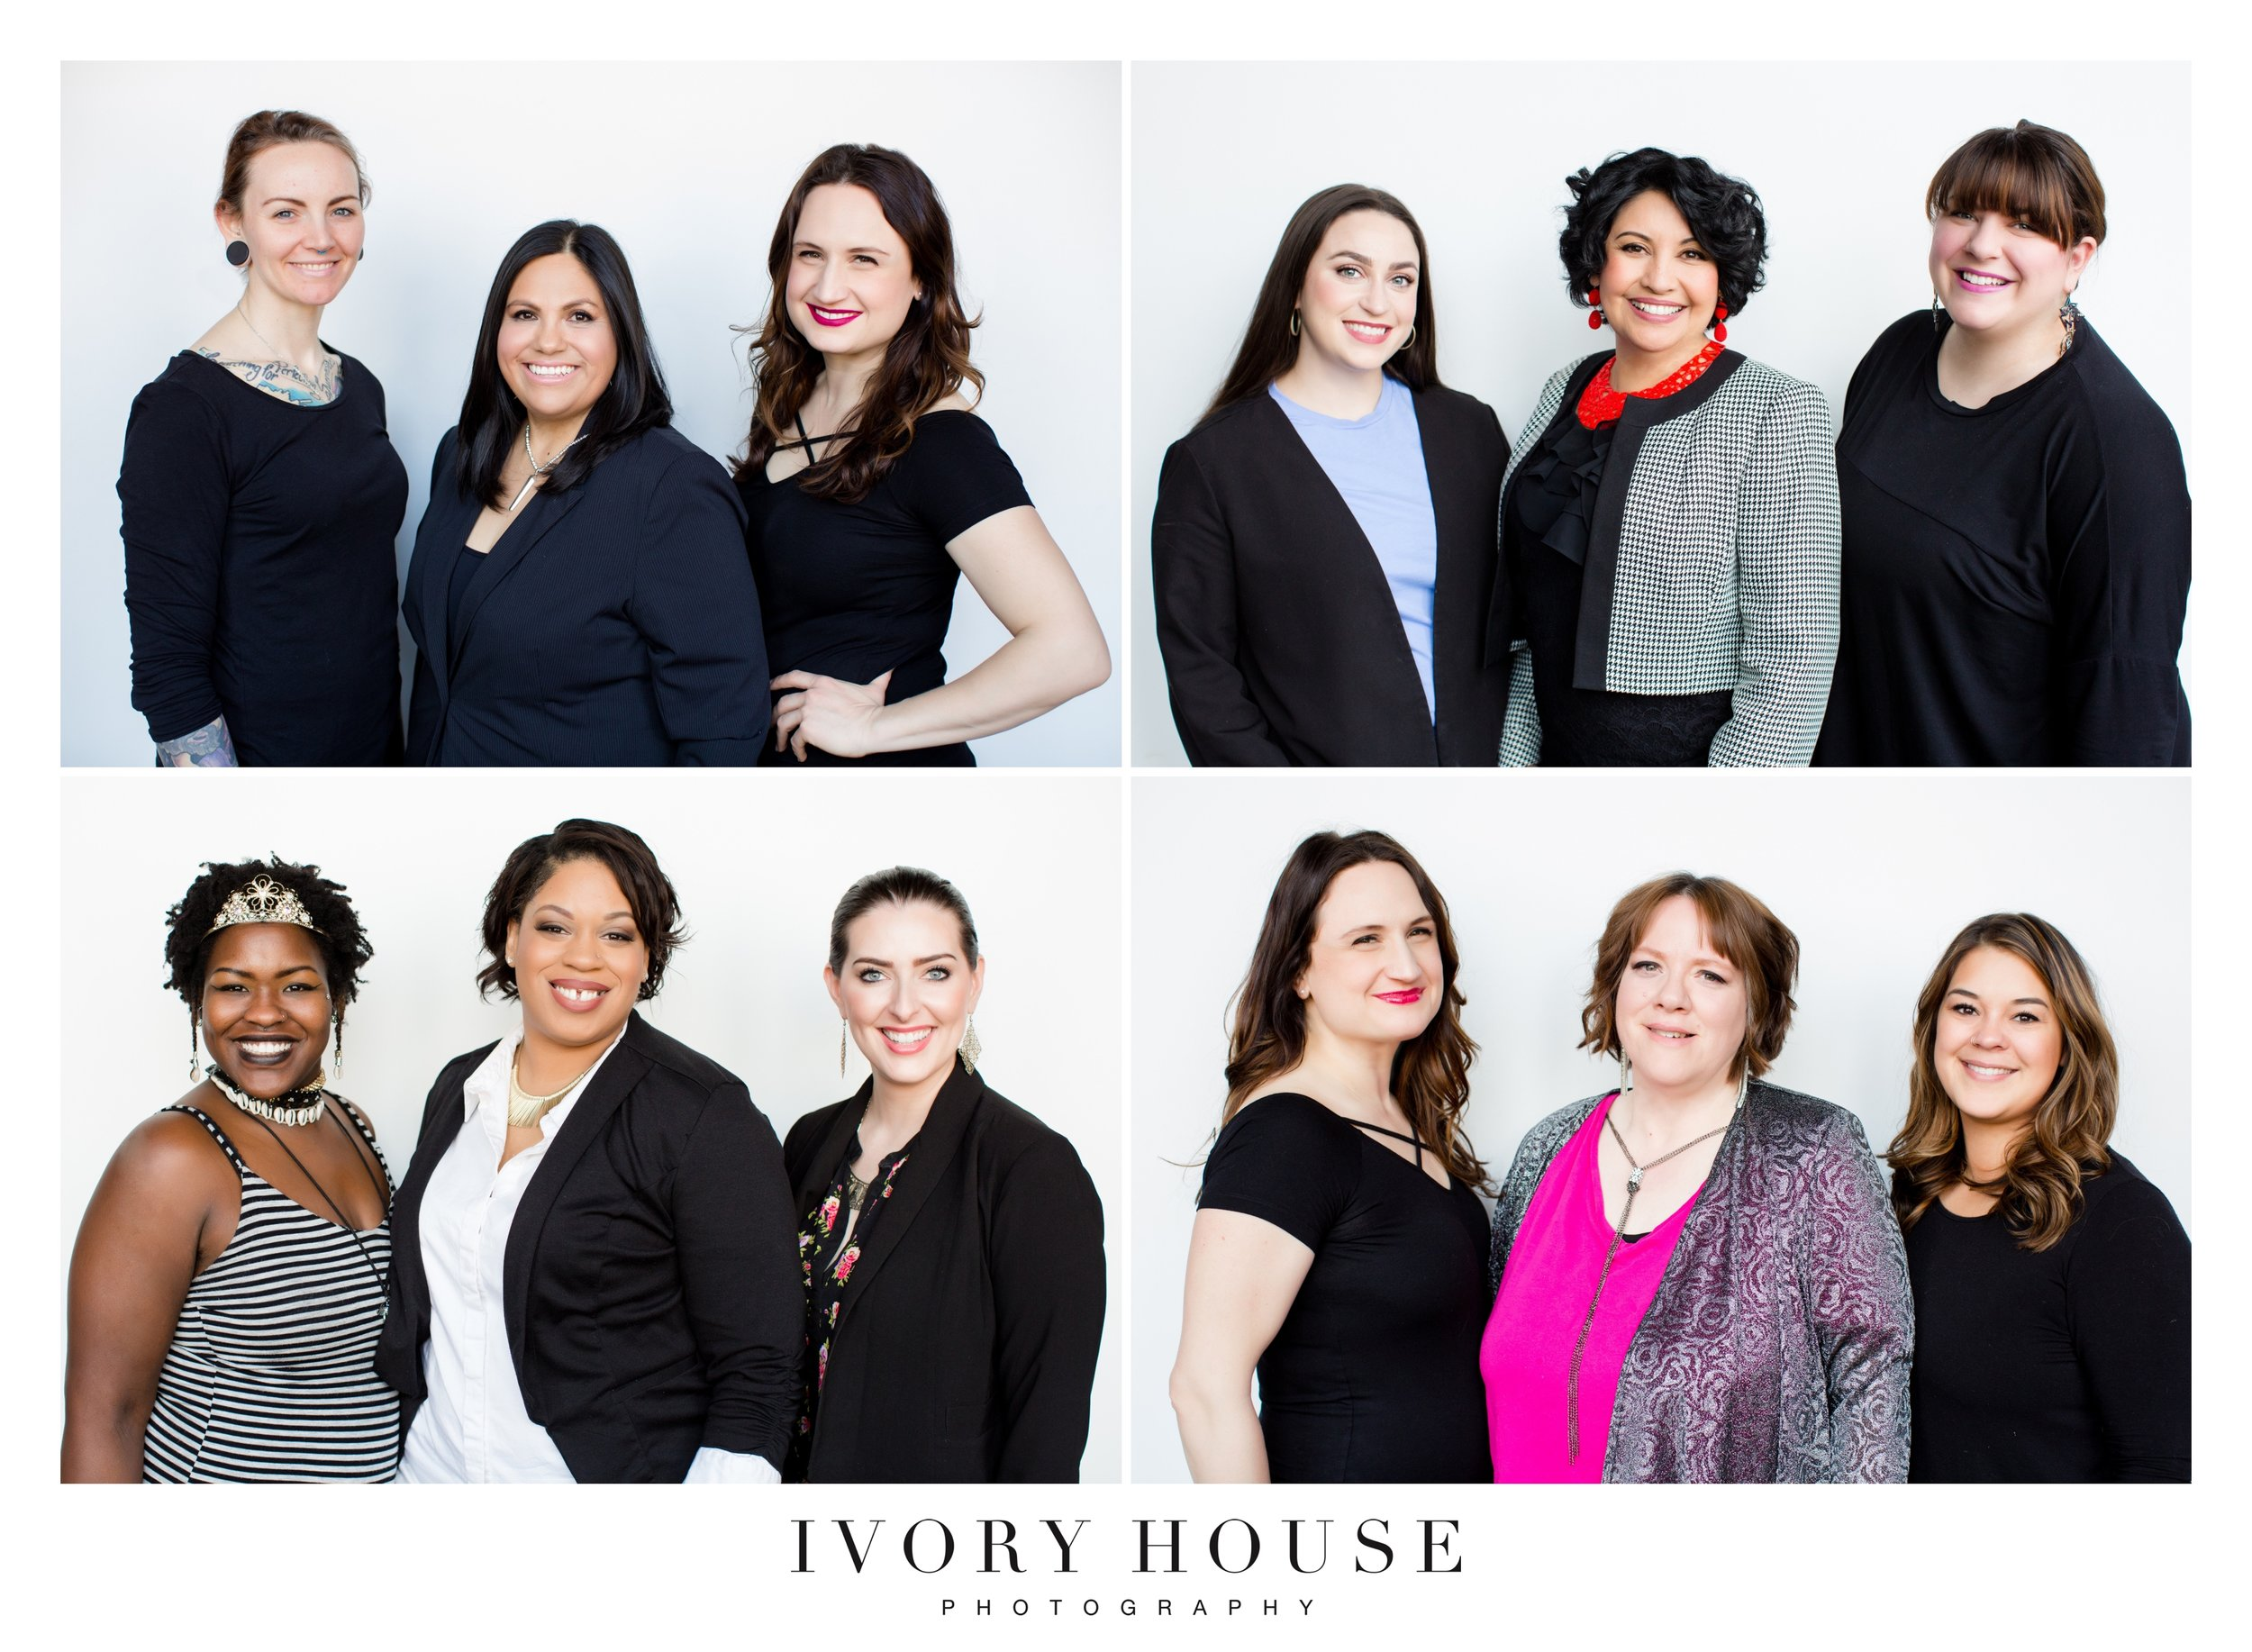 The Glam Teams, clockwise from top left: Ashley Maree Harvey (hair), Violeta, Natalie Gendle (makeup, ACADEMIC Lash & Beauty); Ivy Boyd (makeup, Ivy Boyd Makeup Artist + Beauty Blogger), Africa, Stacy Syroka (hair, Elevencherry); Desi Thompson (hair, Desi at Dolce), Jenny, Natalie Gendle (makeup, ACADEMIC Lash & Beauty); Kelsey Ziemann (makeup, Kelsi Ziemann Artistry), Jasmin, Kearra Chester (hair)